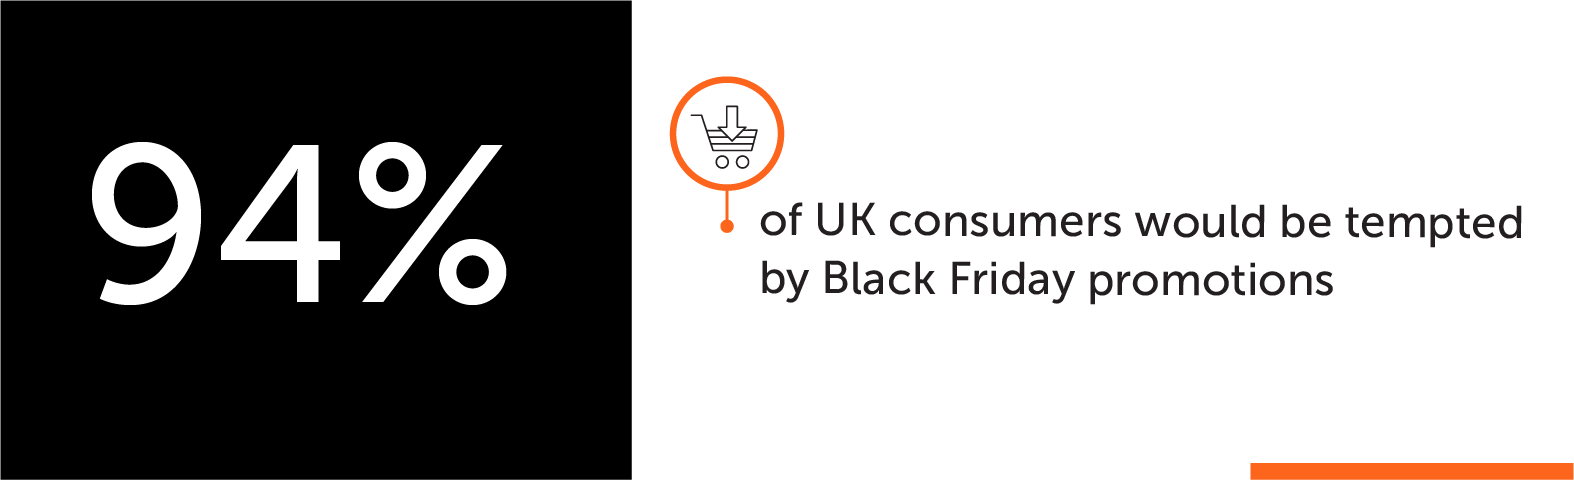 94% of UK would be tempted by Black Friday promotions